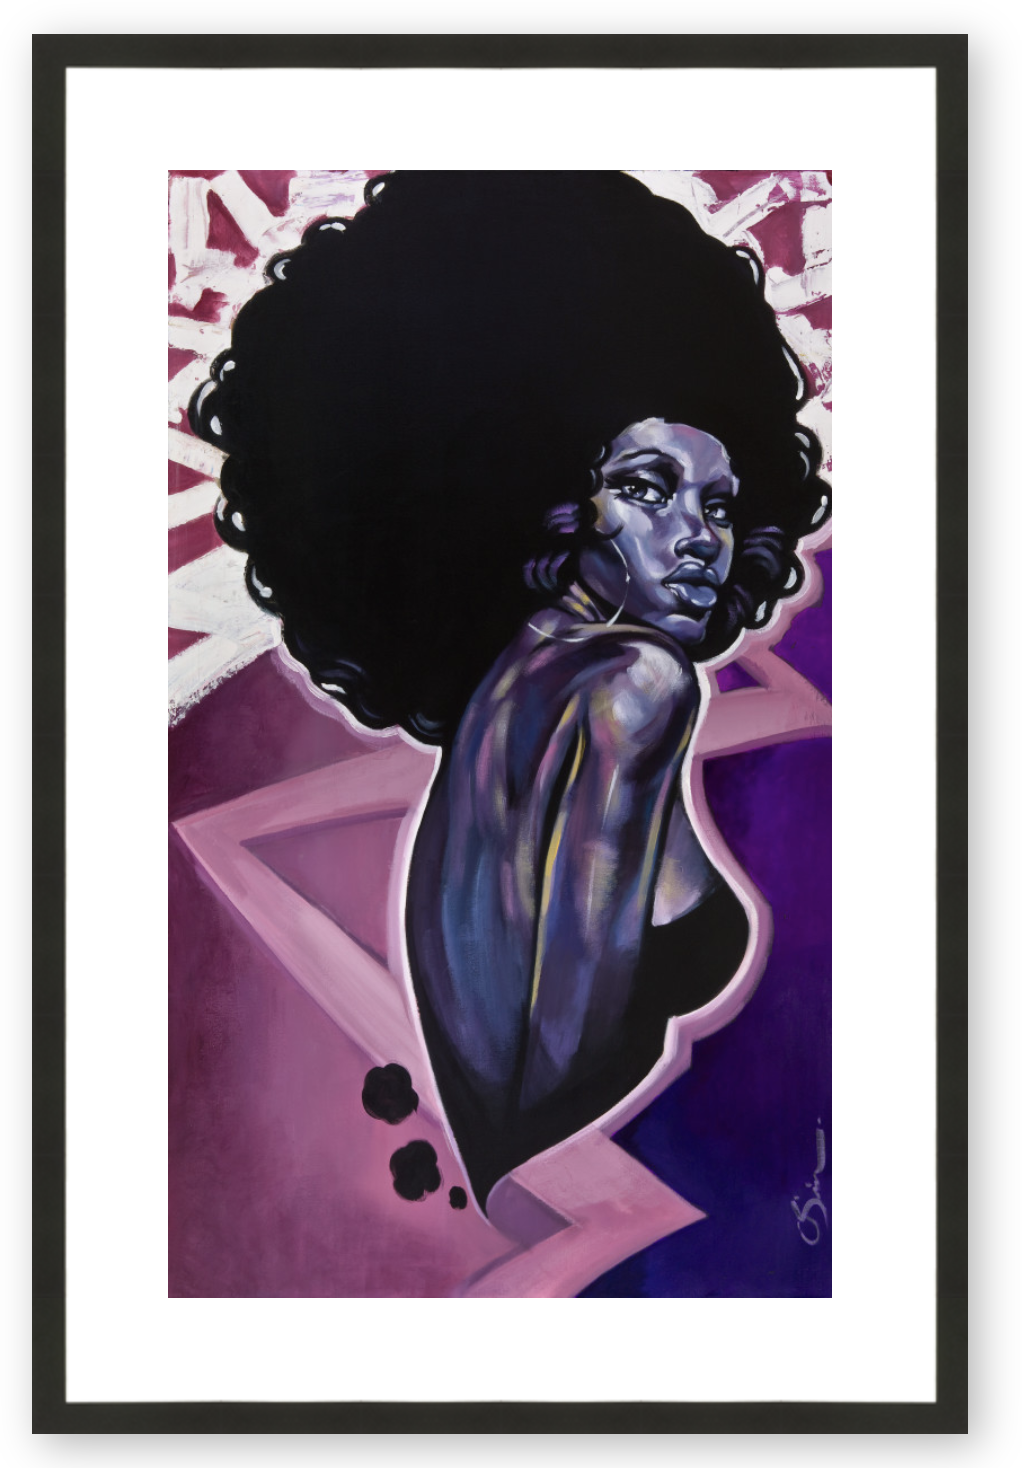 Black Cotton - Framed & Ready to Hang